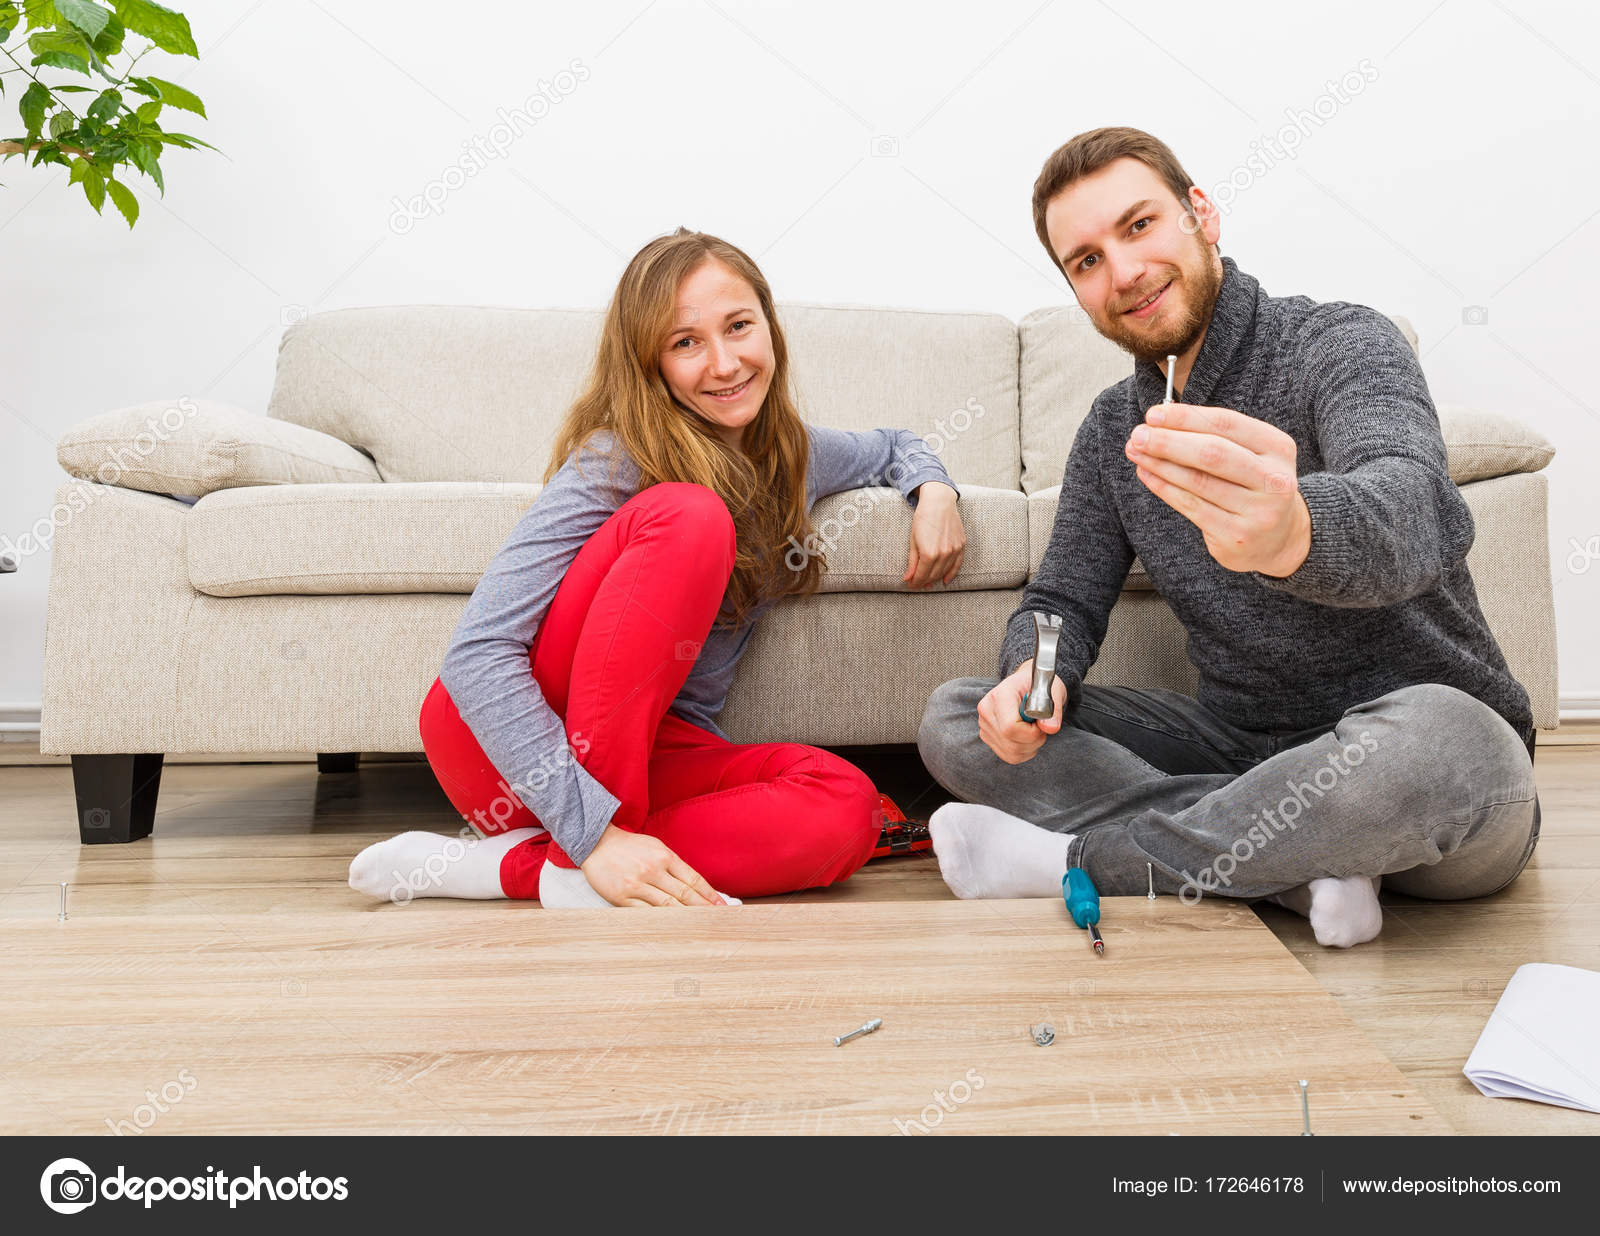 Do it yourself home improvement stock photo obencem 172646178 do it yourself home improvement stock photo solutioingenieria Images